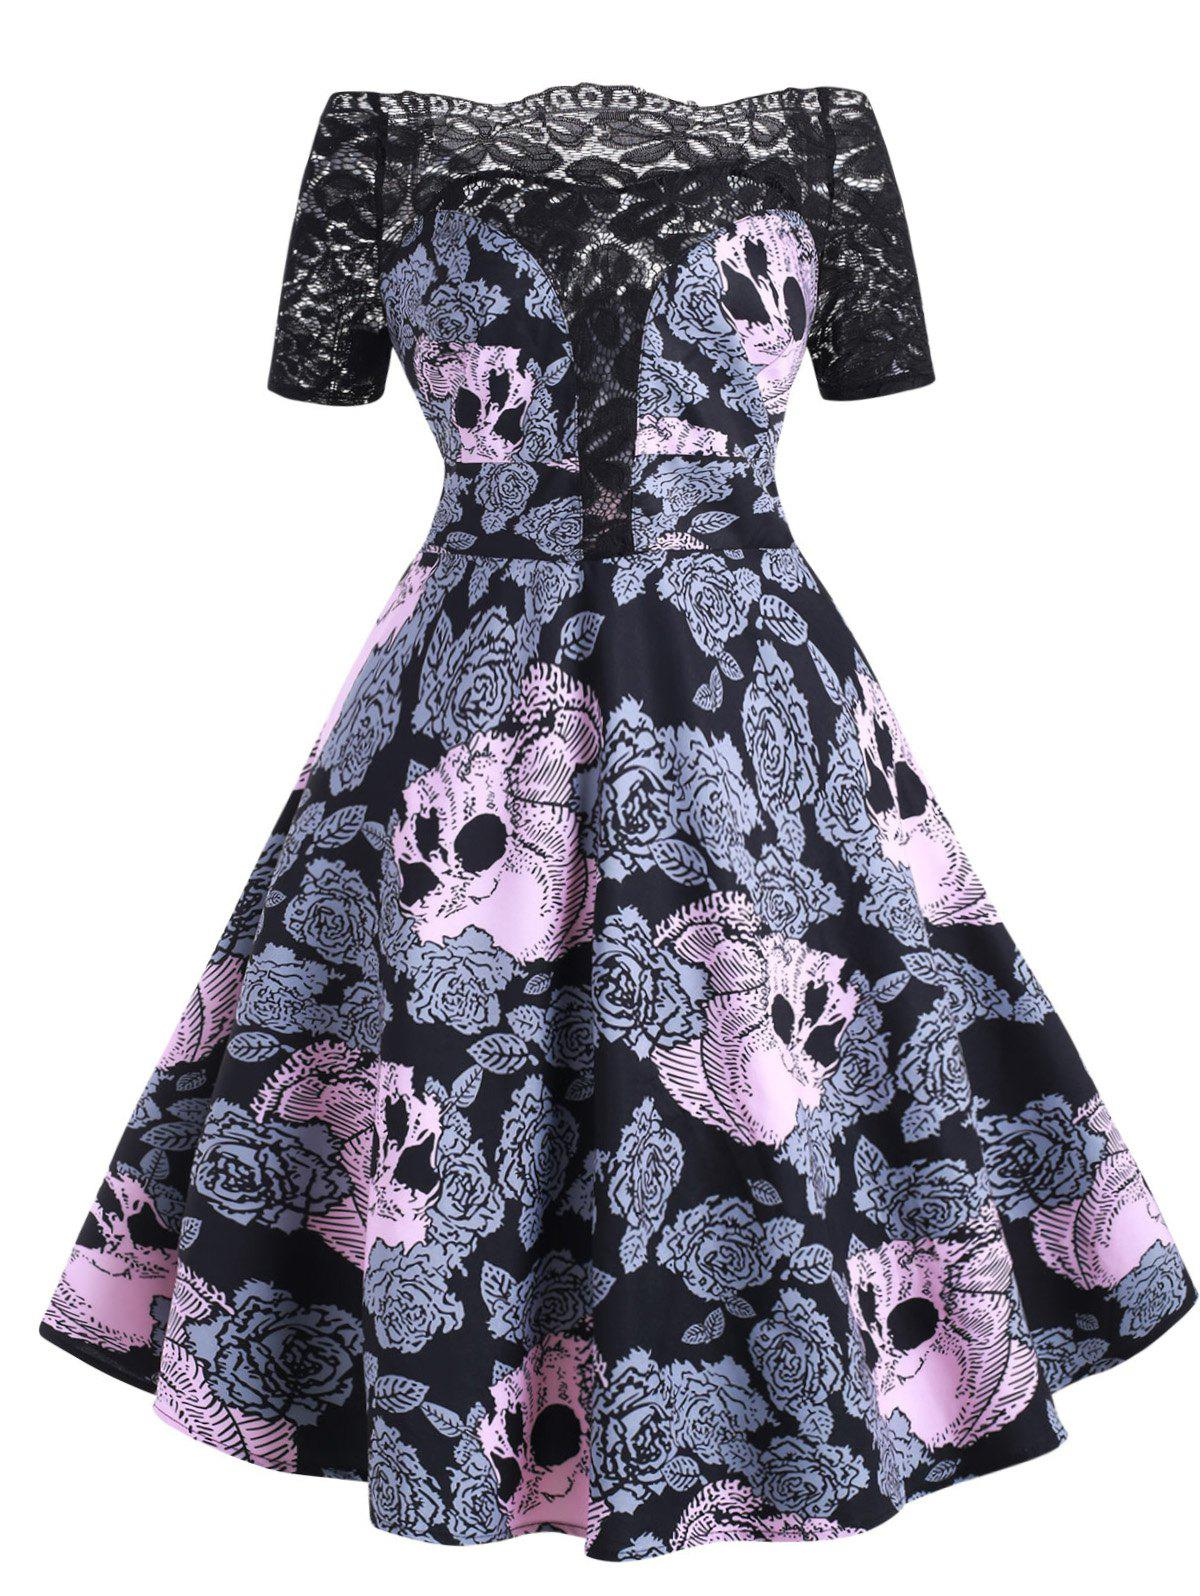 Latest Halloween Lace Panel Floral Skull Off Shoulder Plus Size Dress